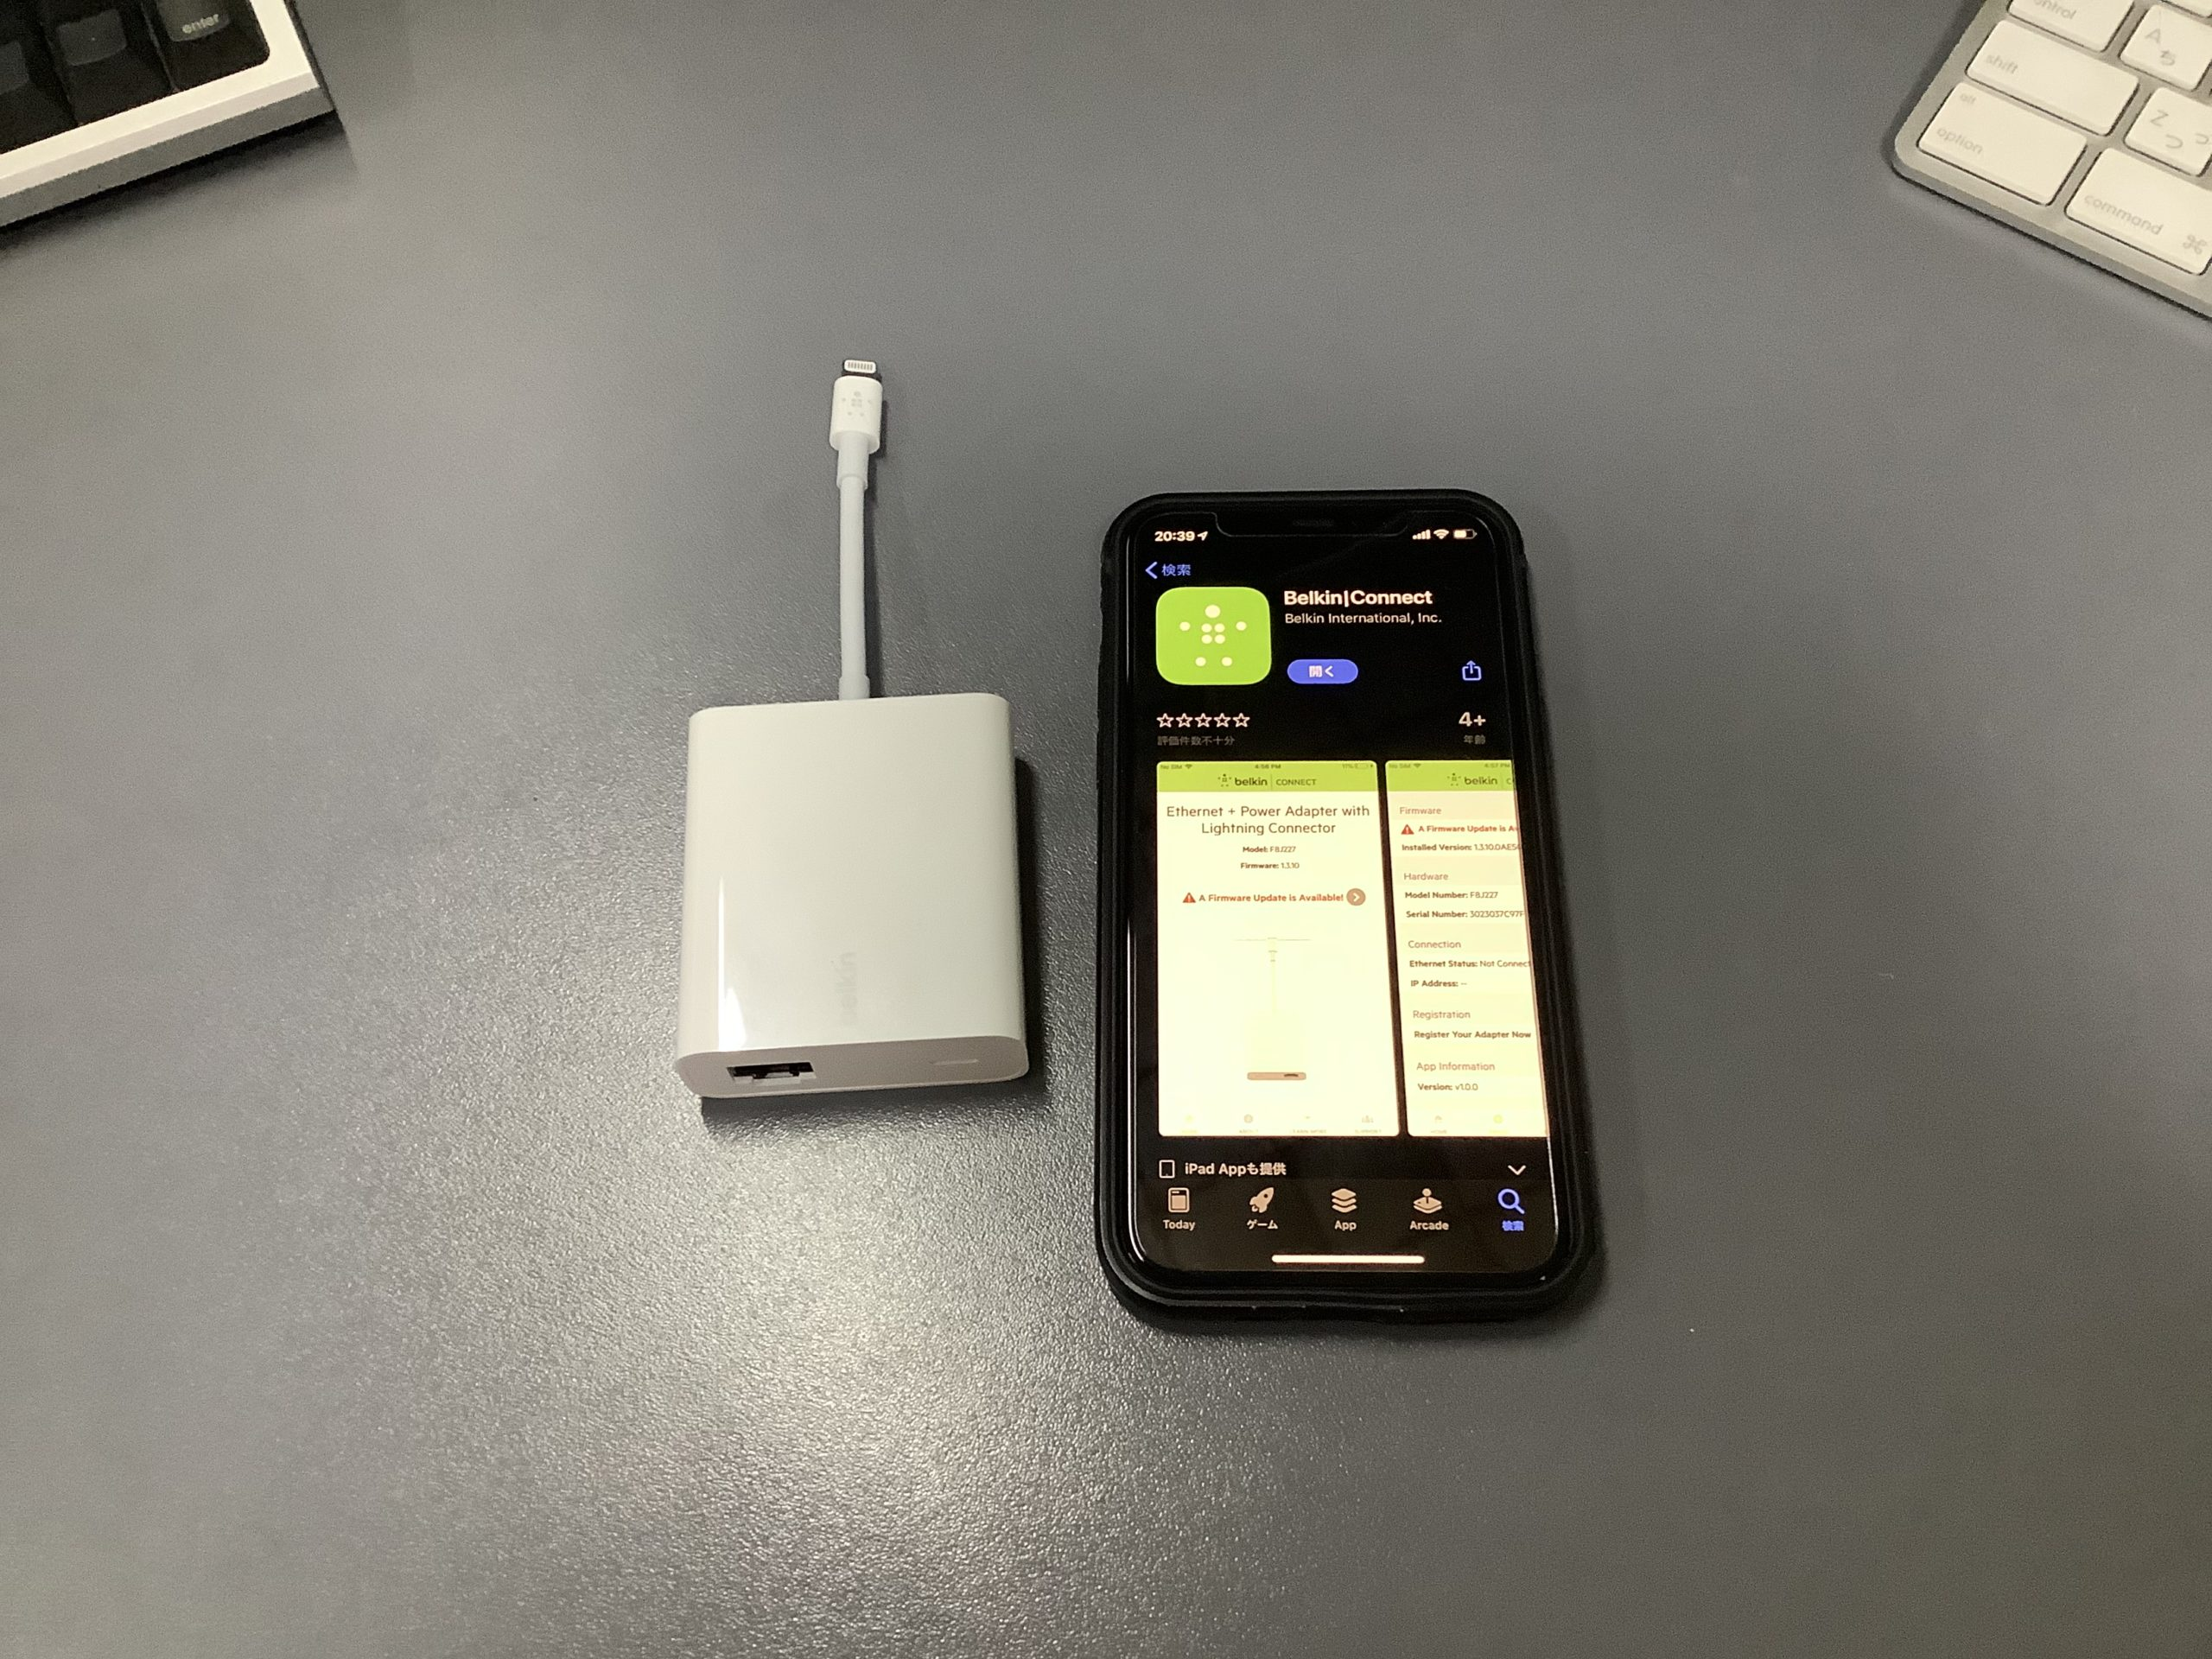 Belkin Ethernet + Power Adapter with Lightning Connectorが届きました。